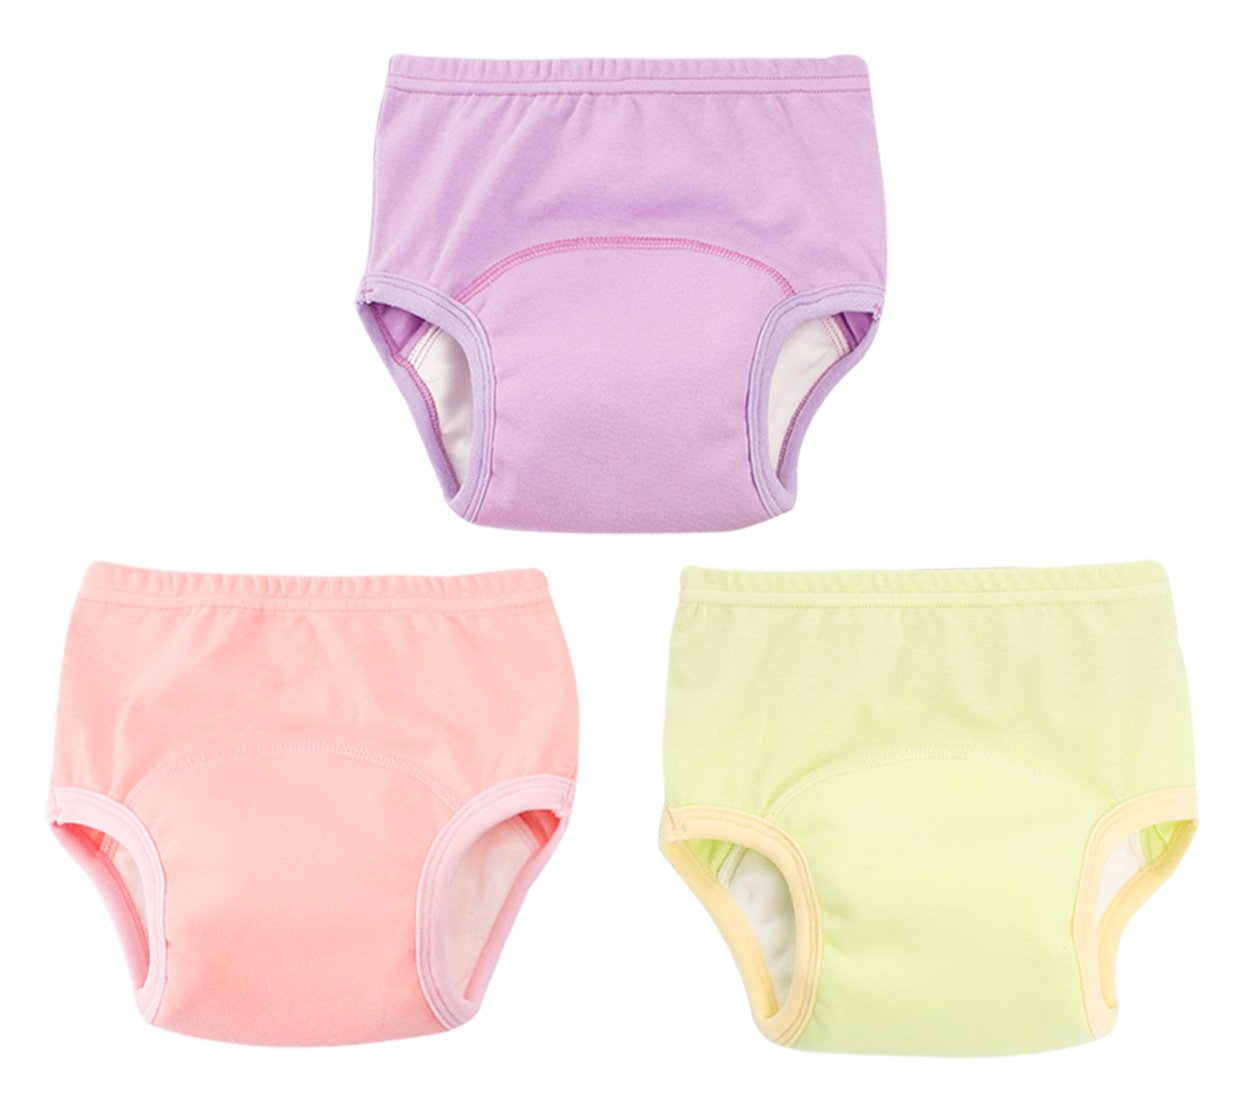 Unisex Baby Training Underwear 6 Layers Pure Cotton Diaper Pants Pack of 3 Joyo roy H101FLL001